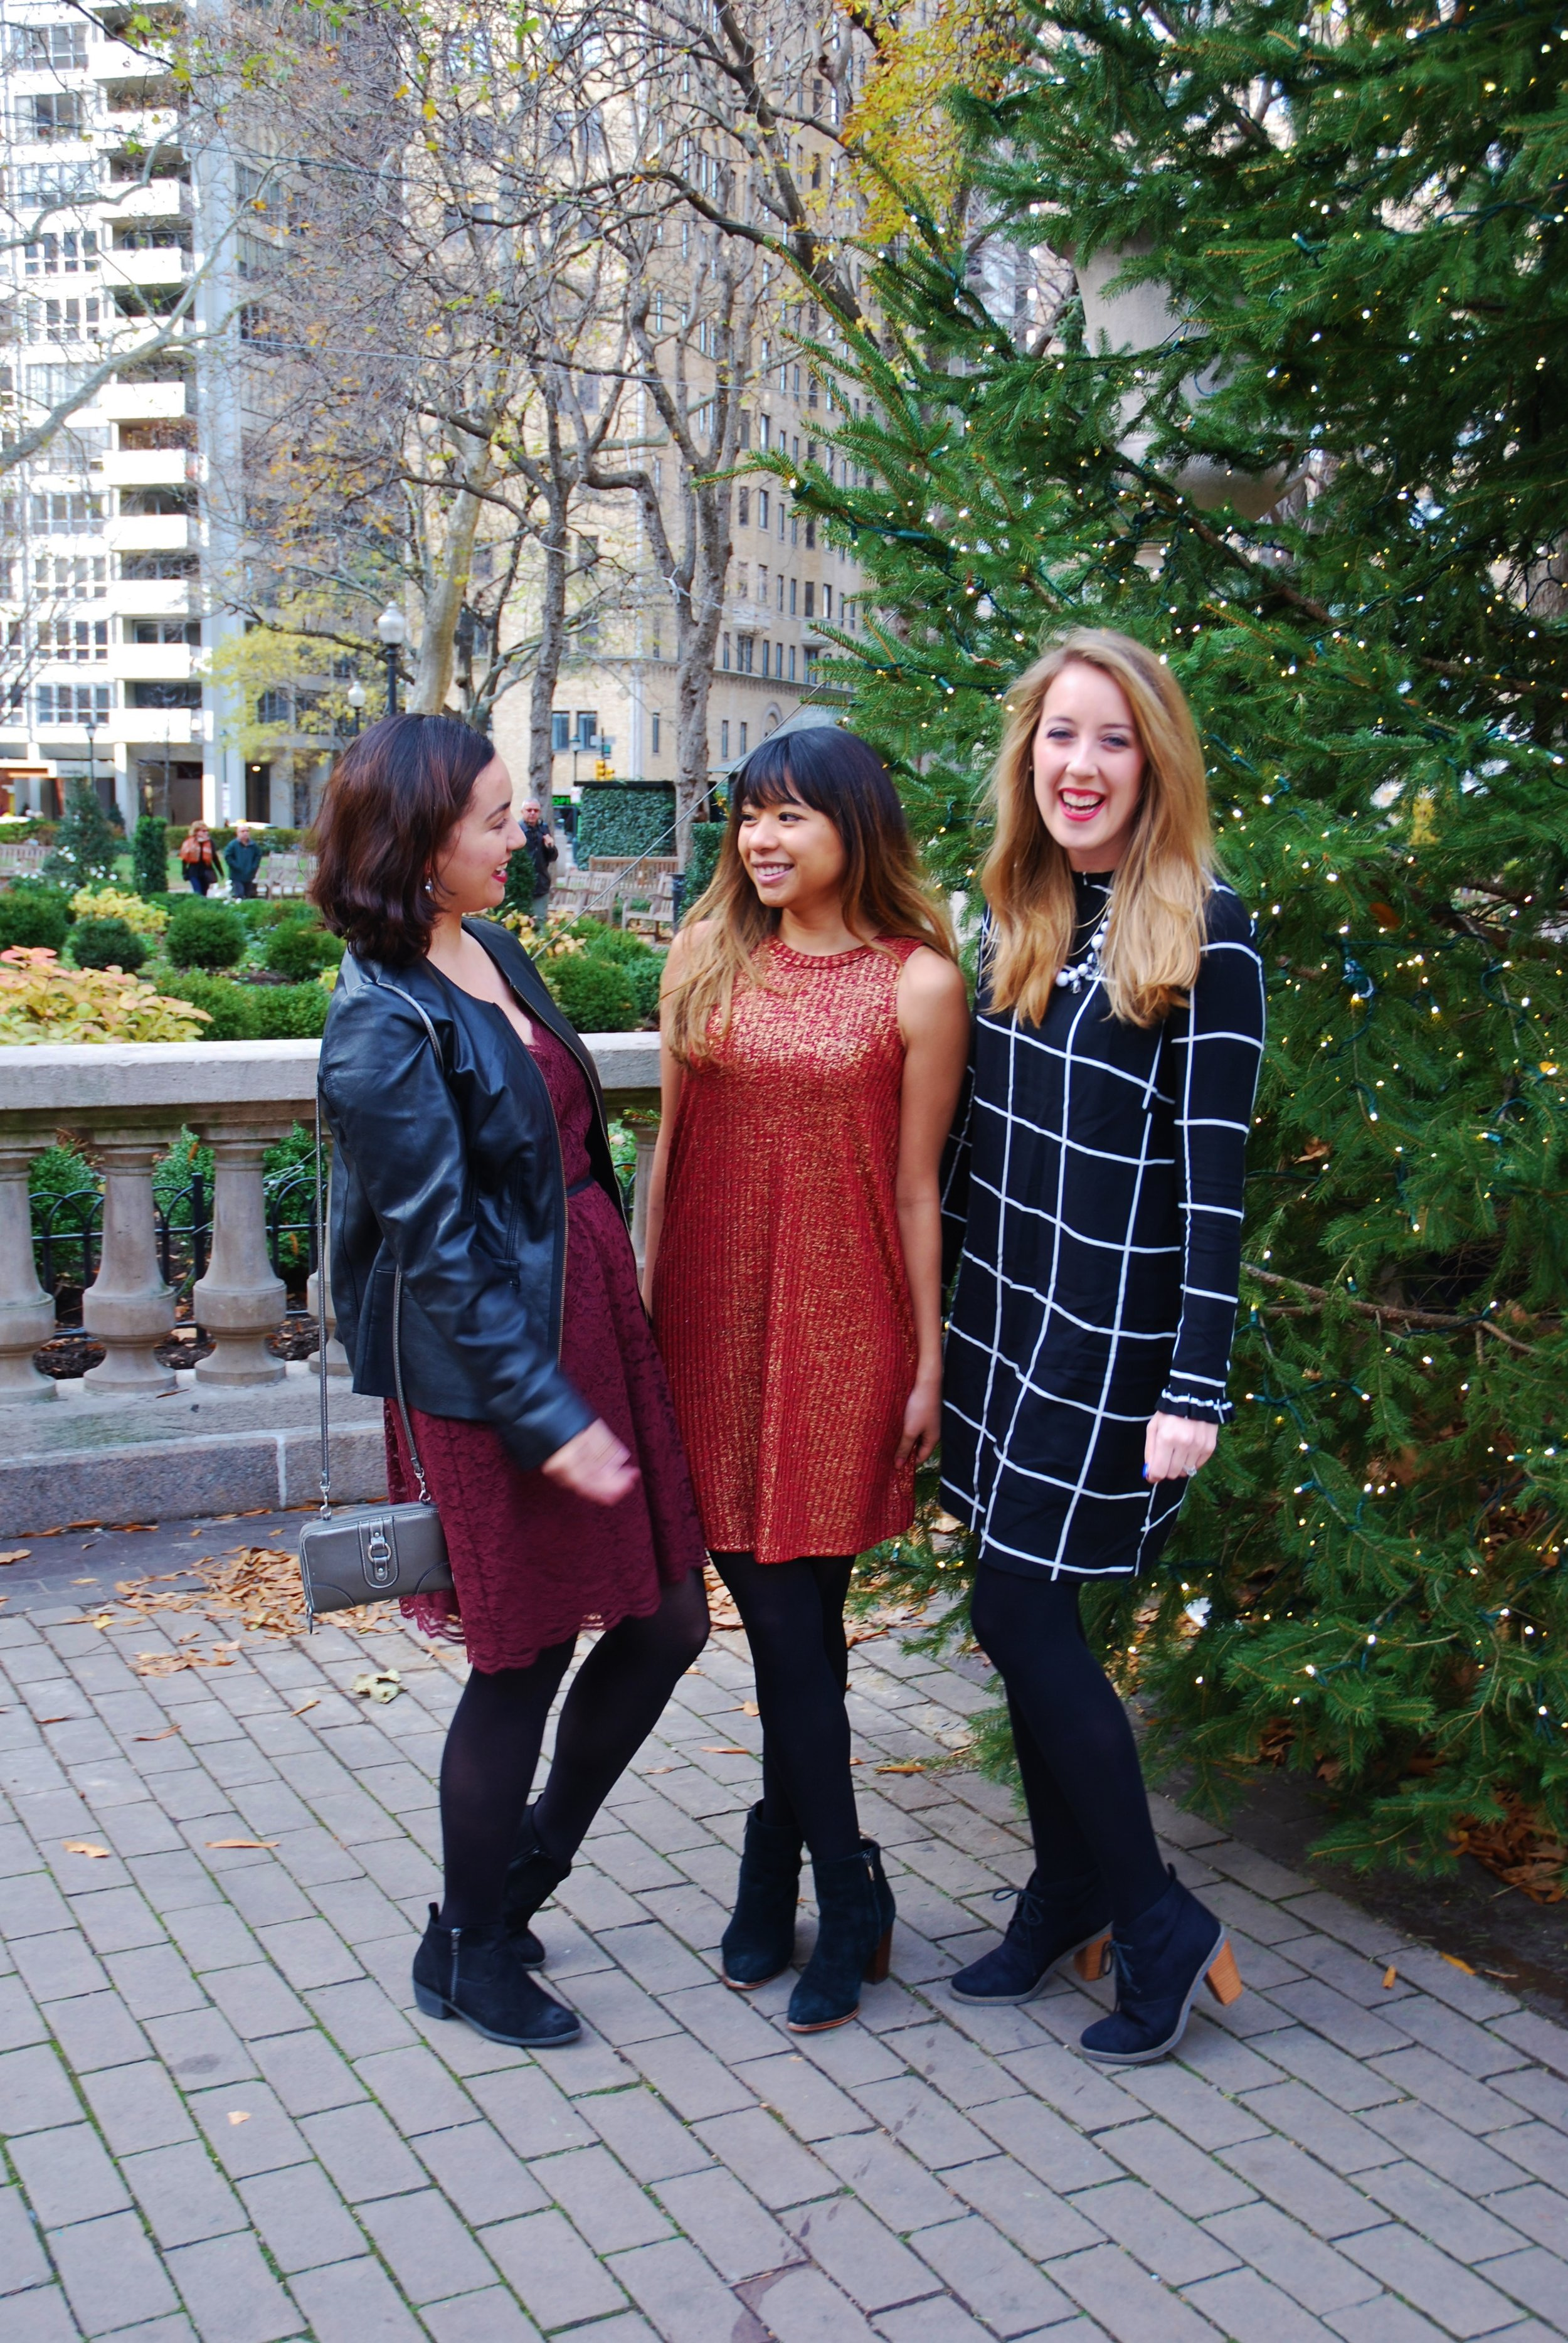 A Simple Holiday Dress for a Ladies' Brunch